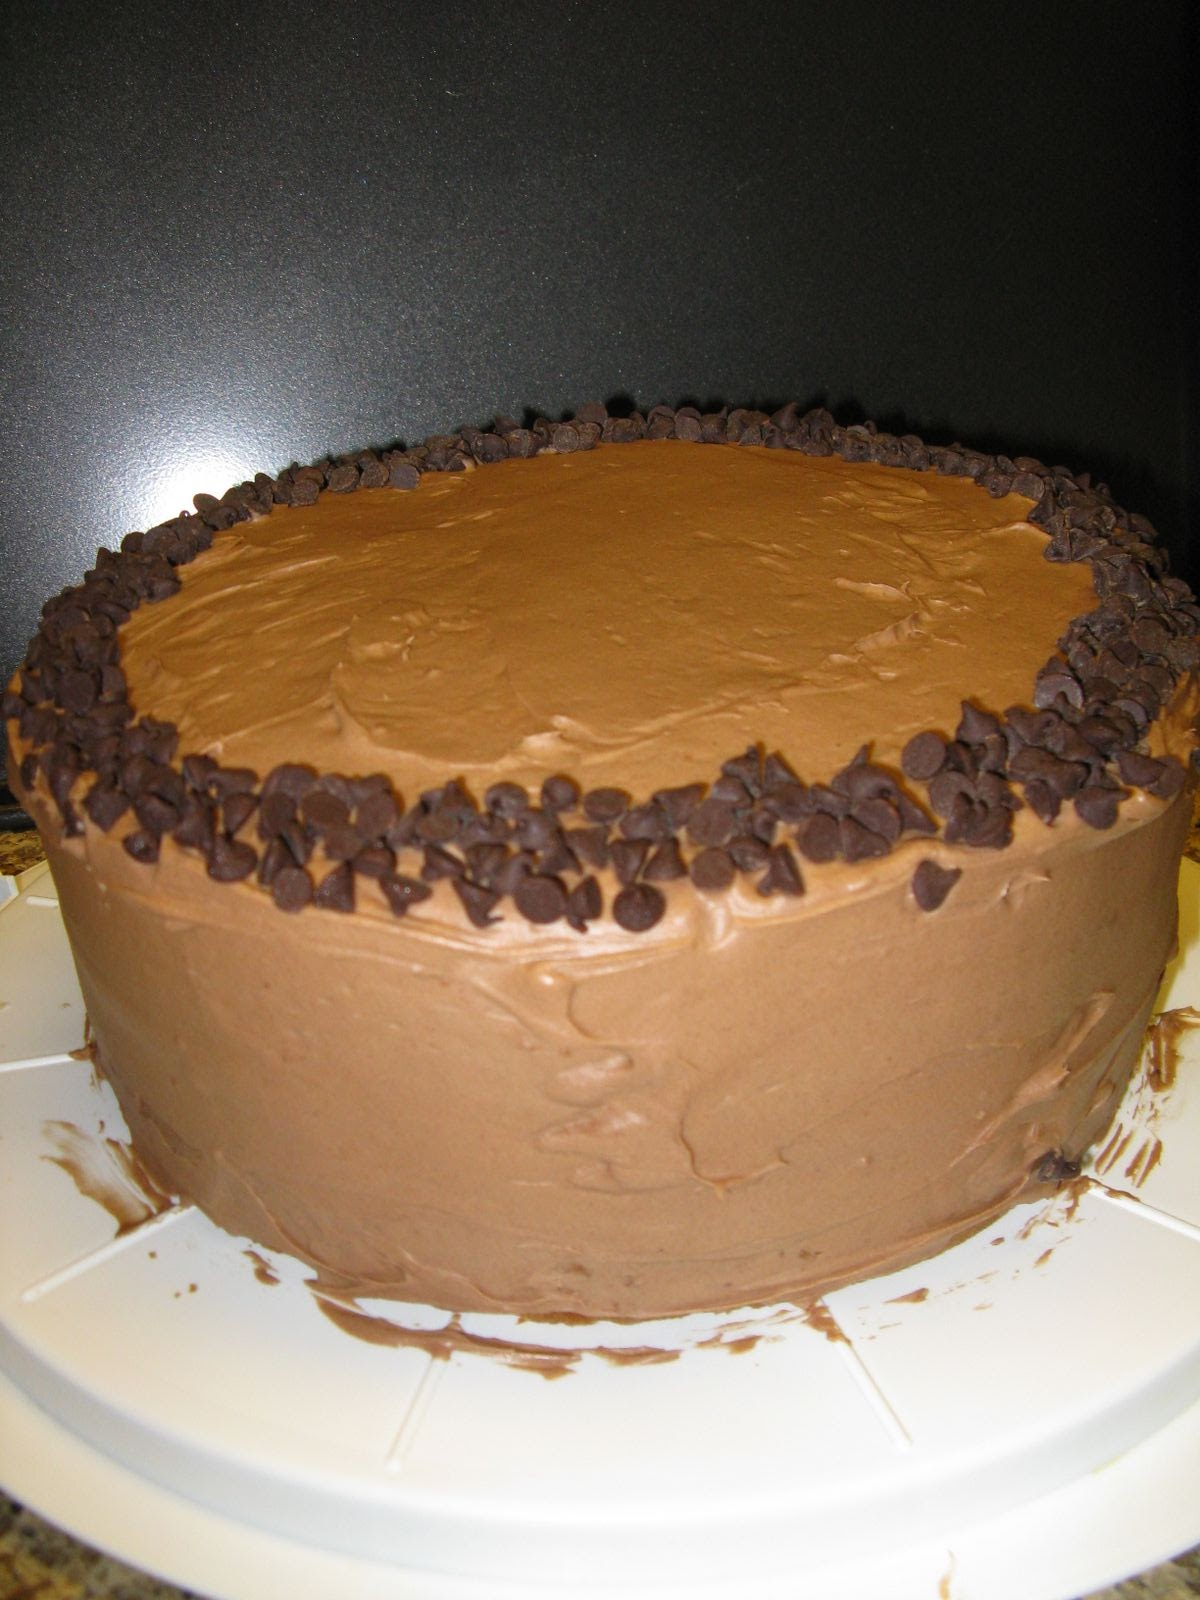 Cake Decoration With Chocolate Chips : Bakers Double: Chocolate Chip Cake with Chocolate Cream ...